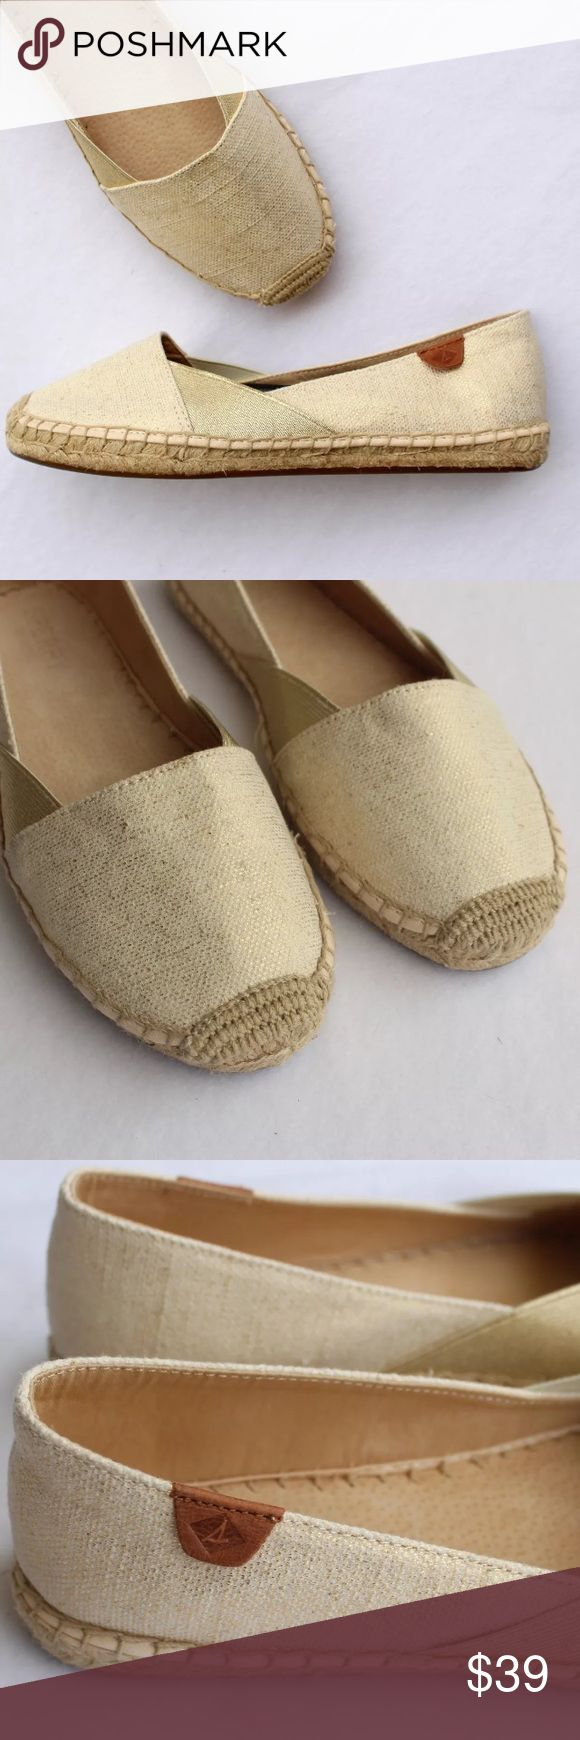 Sperry Top Sider Beige Gold Espadrilles Cape Katan New without box Sperry Top Sider Cape Katana Core Espadrilles Style # STS95780 Beige with gold shimmer Marked size 9M Sperry Top-Sider Shoes Espadrilles